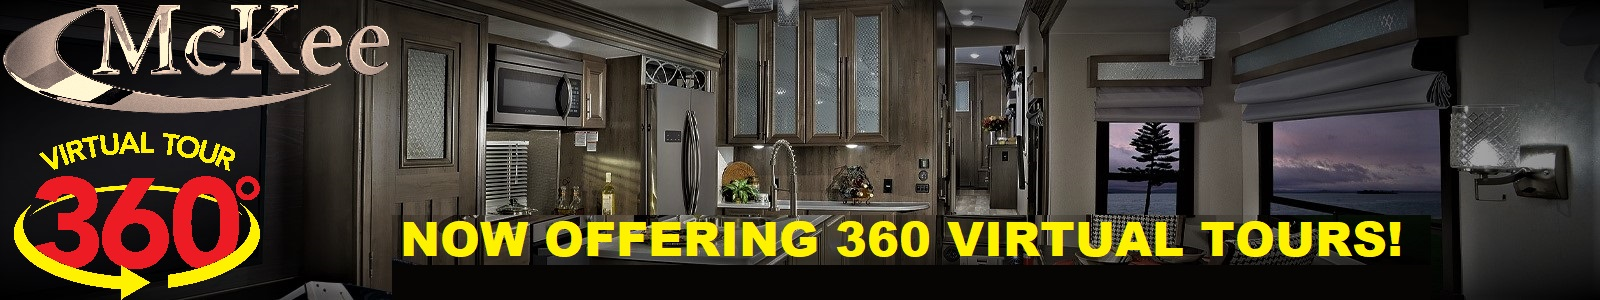 McKee RV 360 Virtual tours